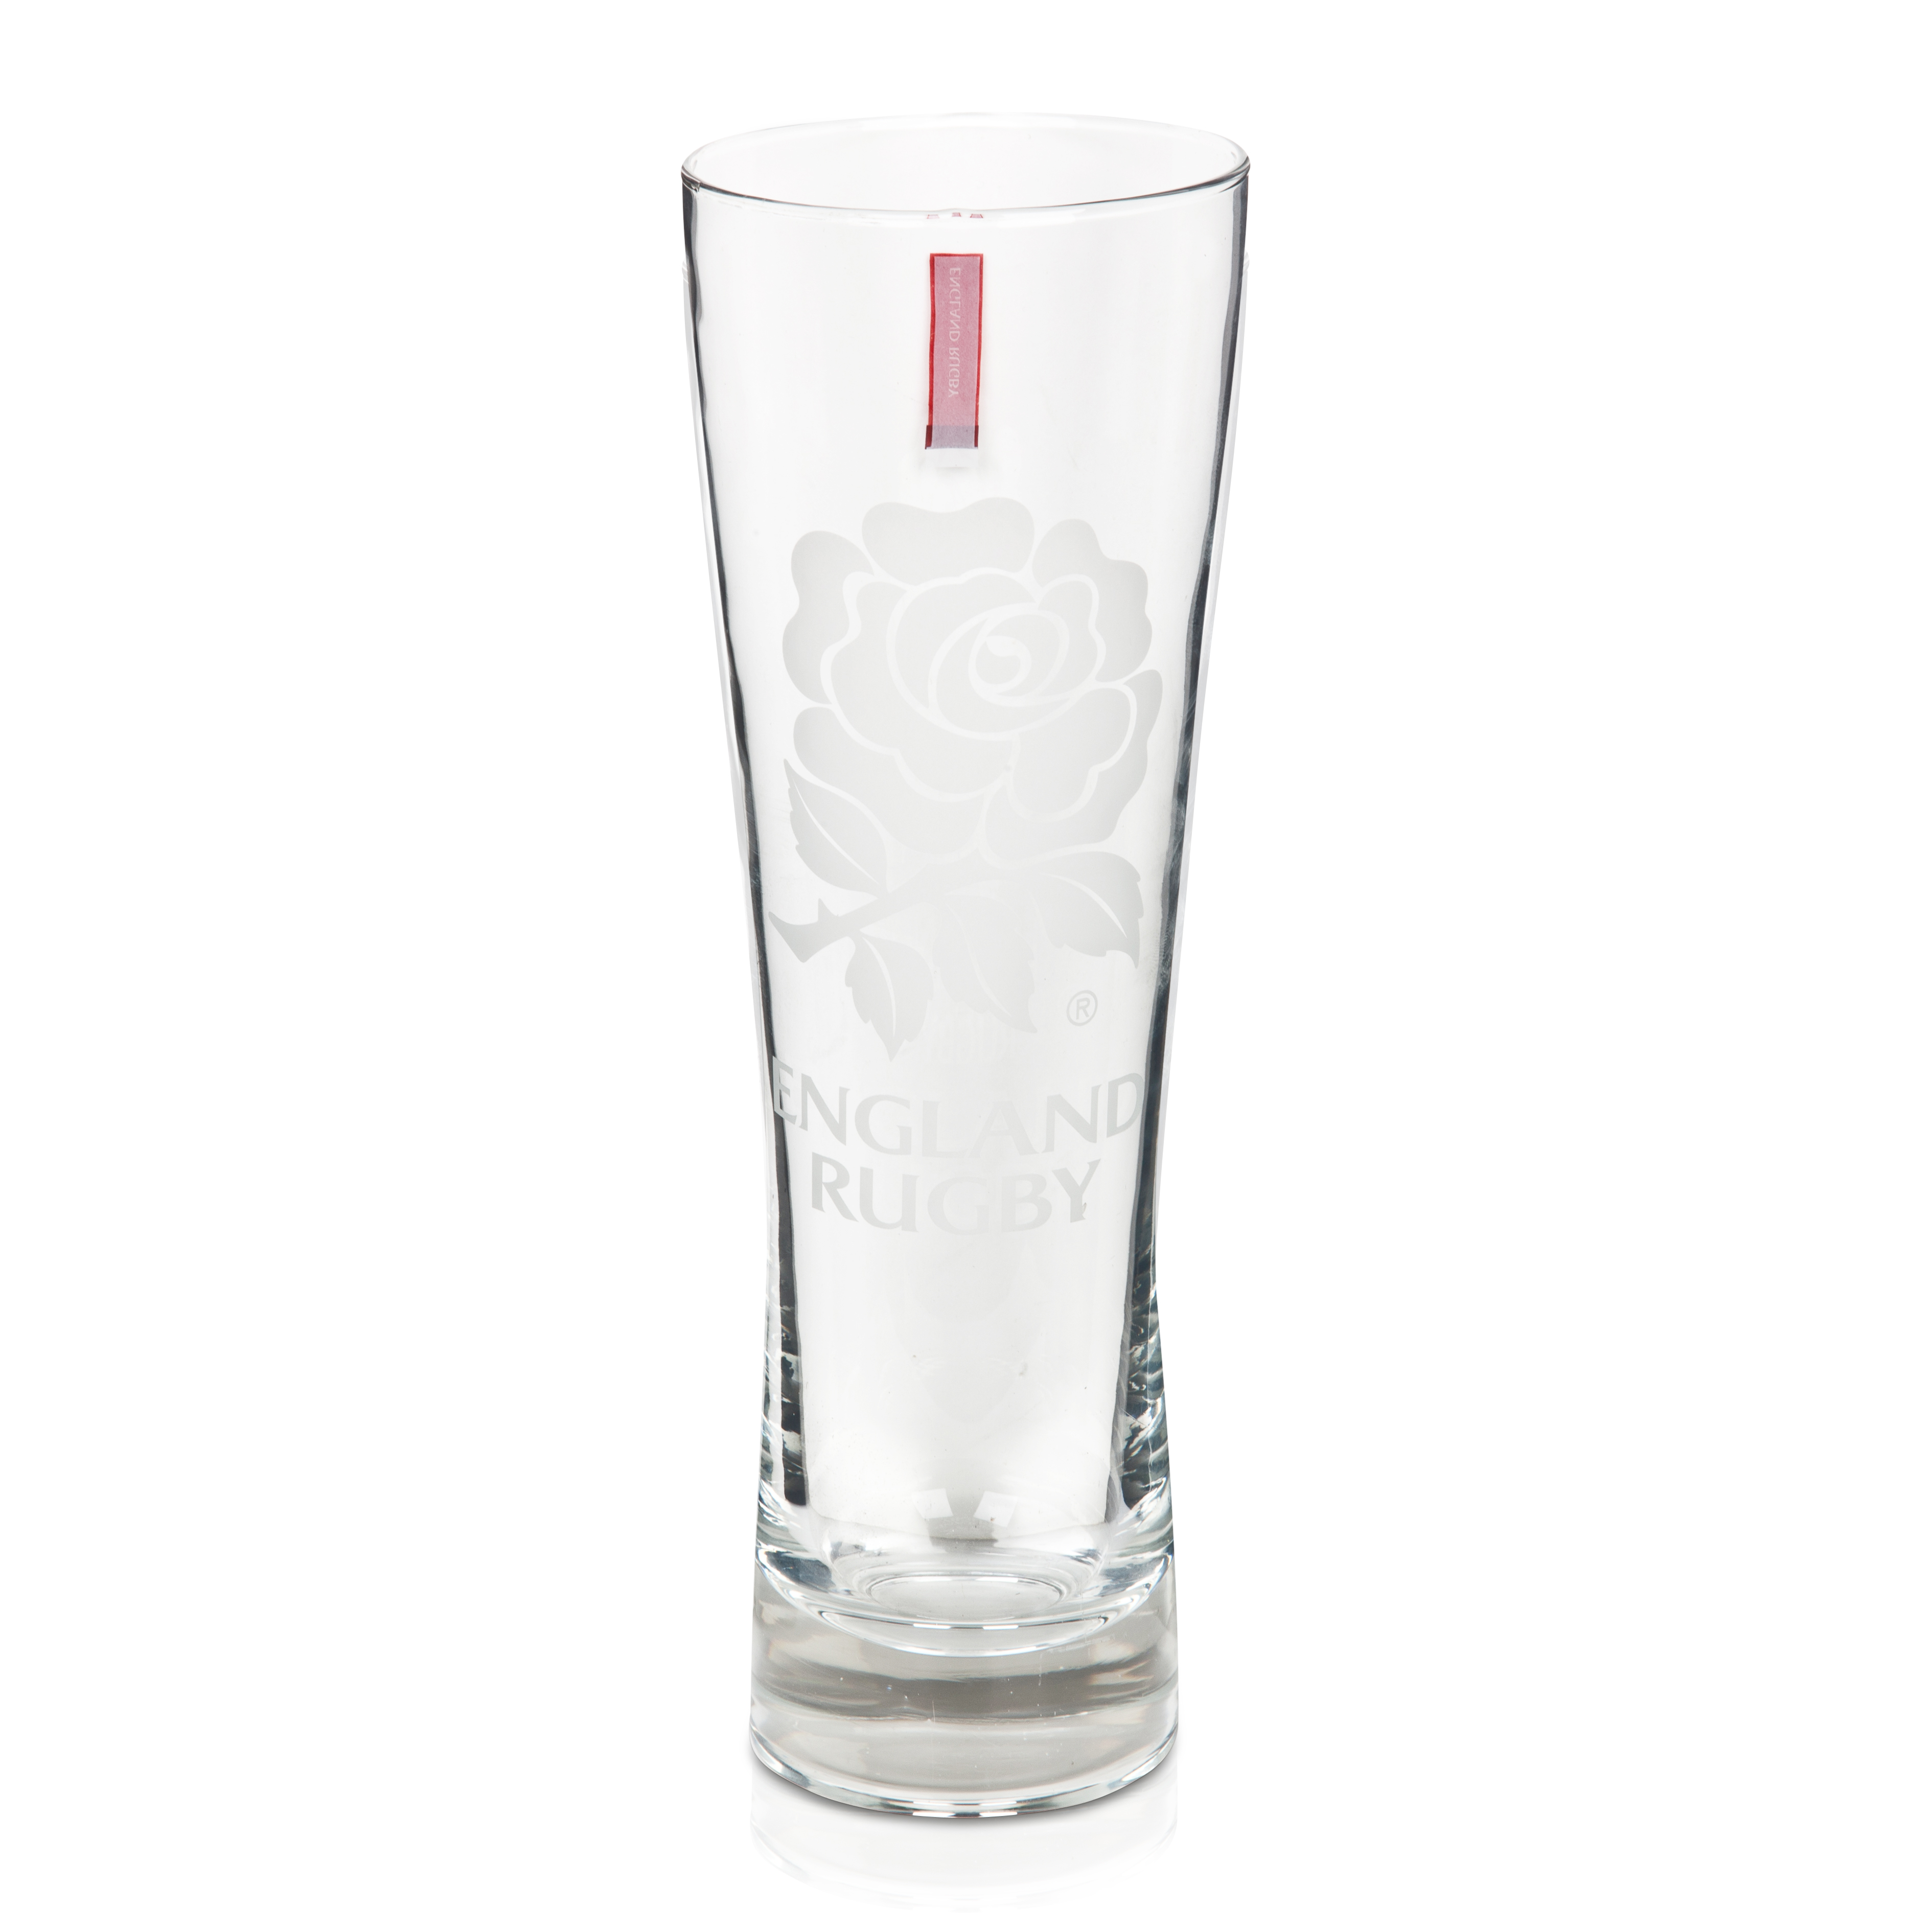 England Rugby Slim Pint Glass